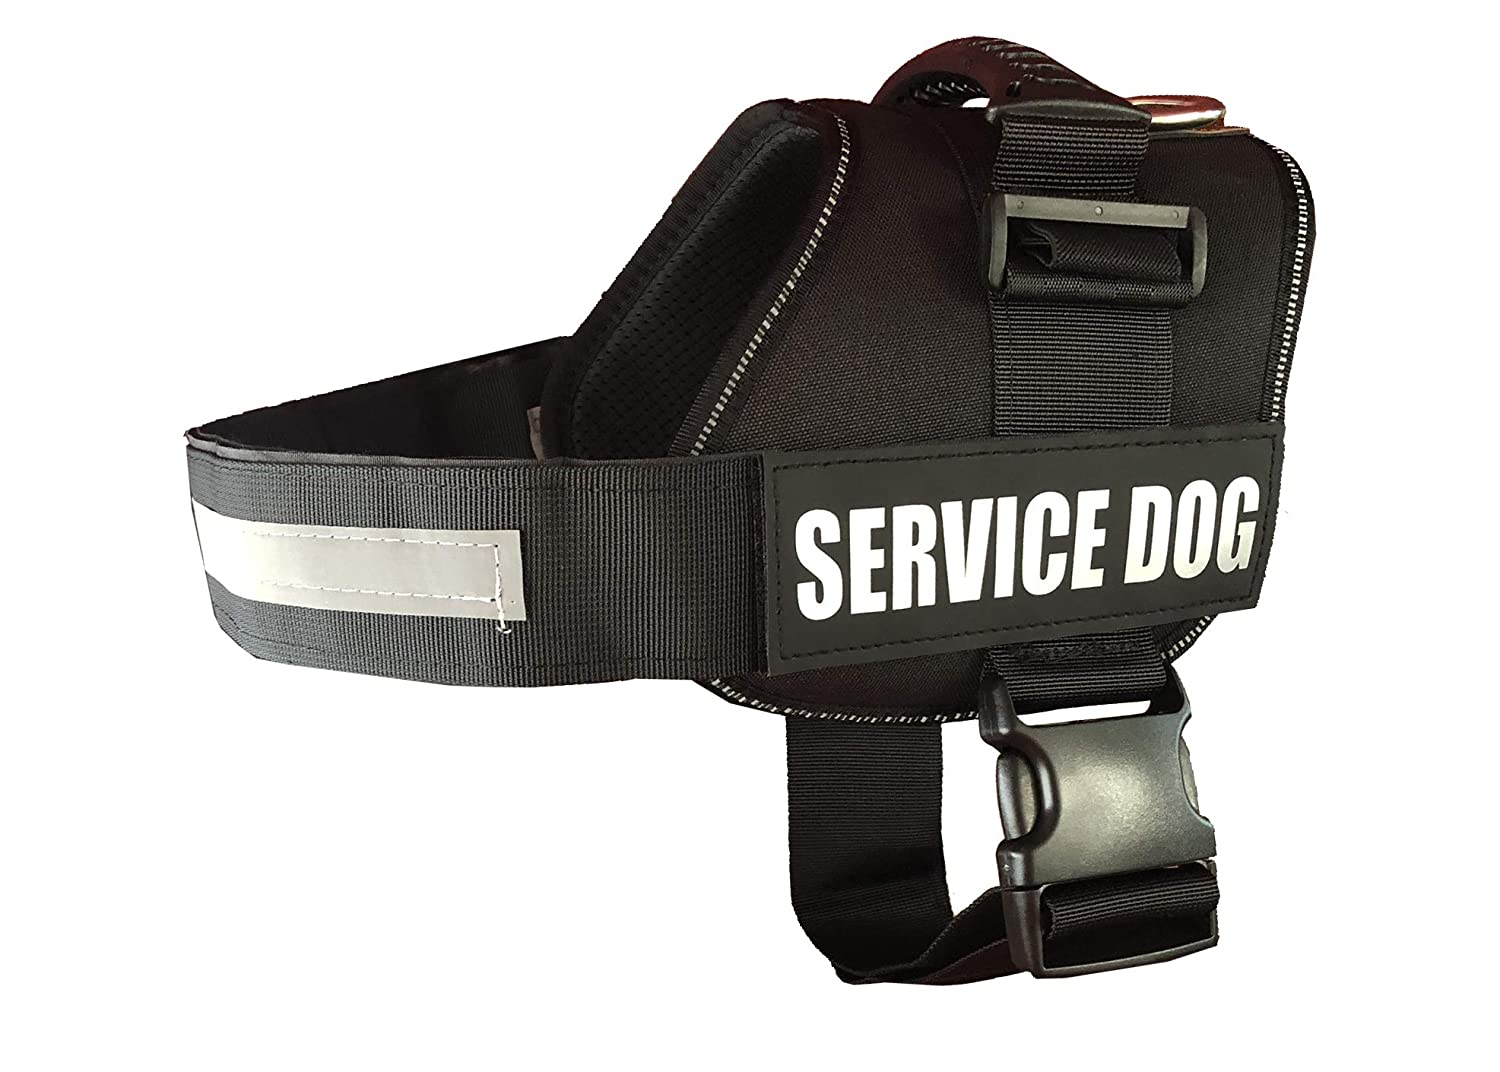 Black XL 33''- 44.5'' Girth Black XL 33''- 44.5'' Girth ALBCORP Reflective Service Dog Vest Harness, Woven Polyester & Nylon, Comfy Soft Padding, Extra Large, Black